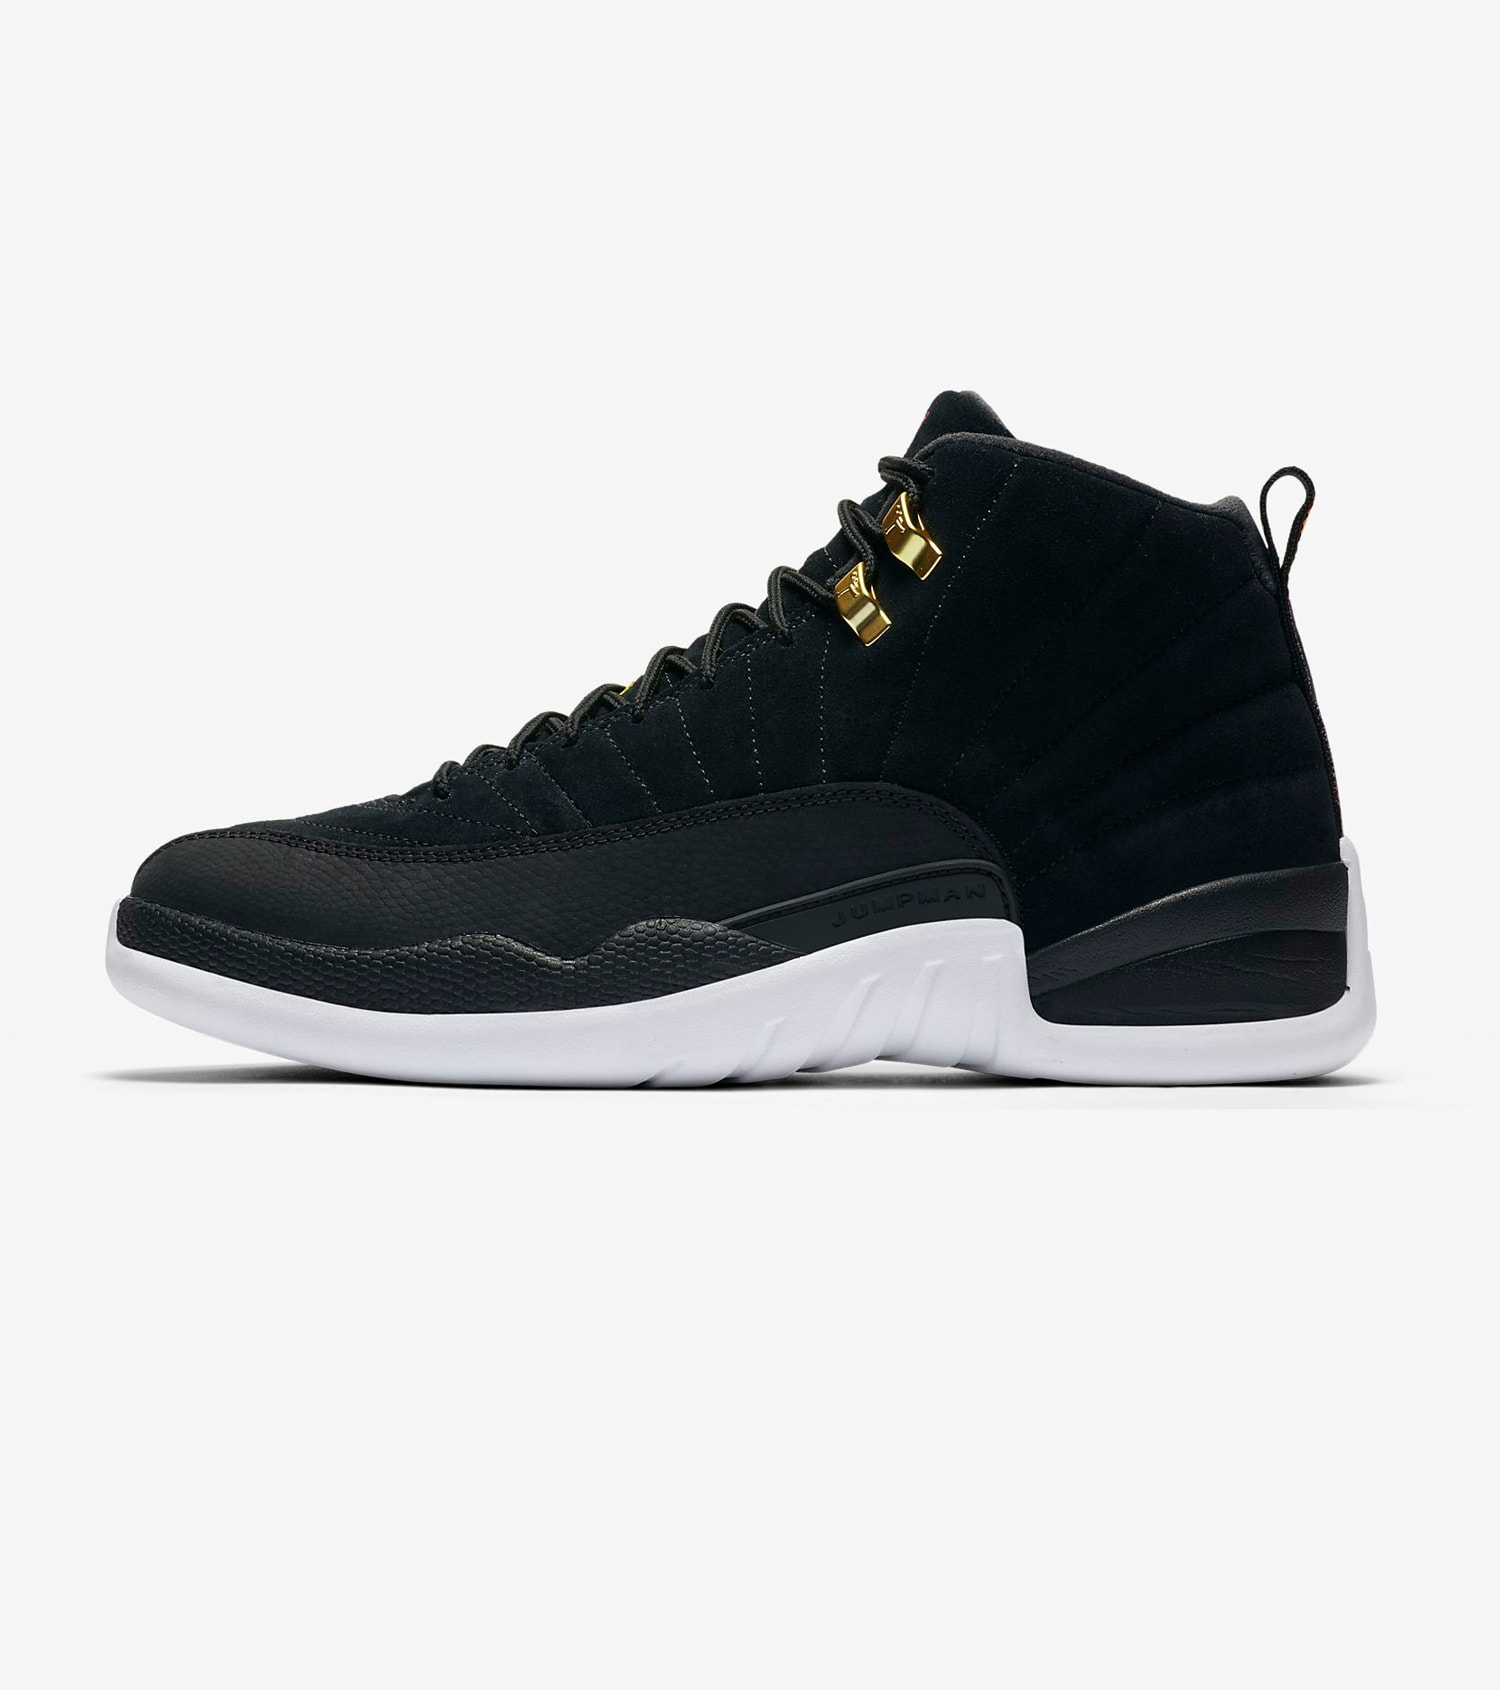 official store hot new products on sale Air Jordan 12 Retro